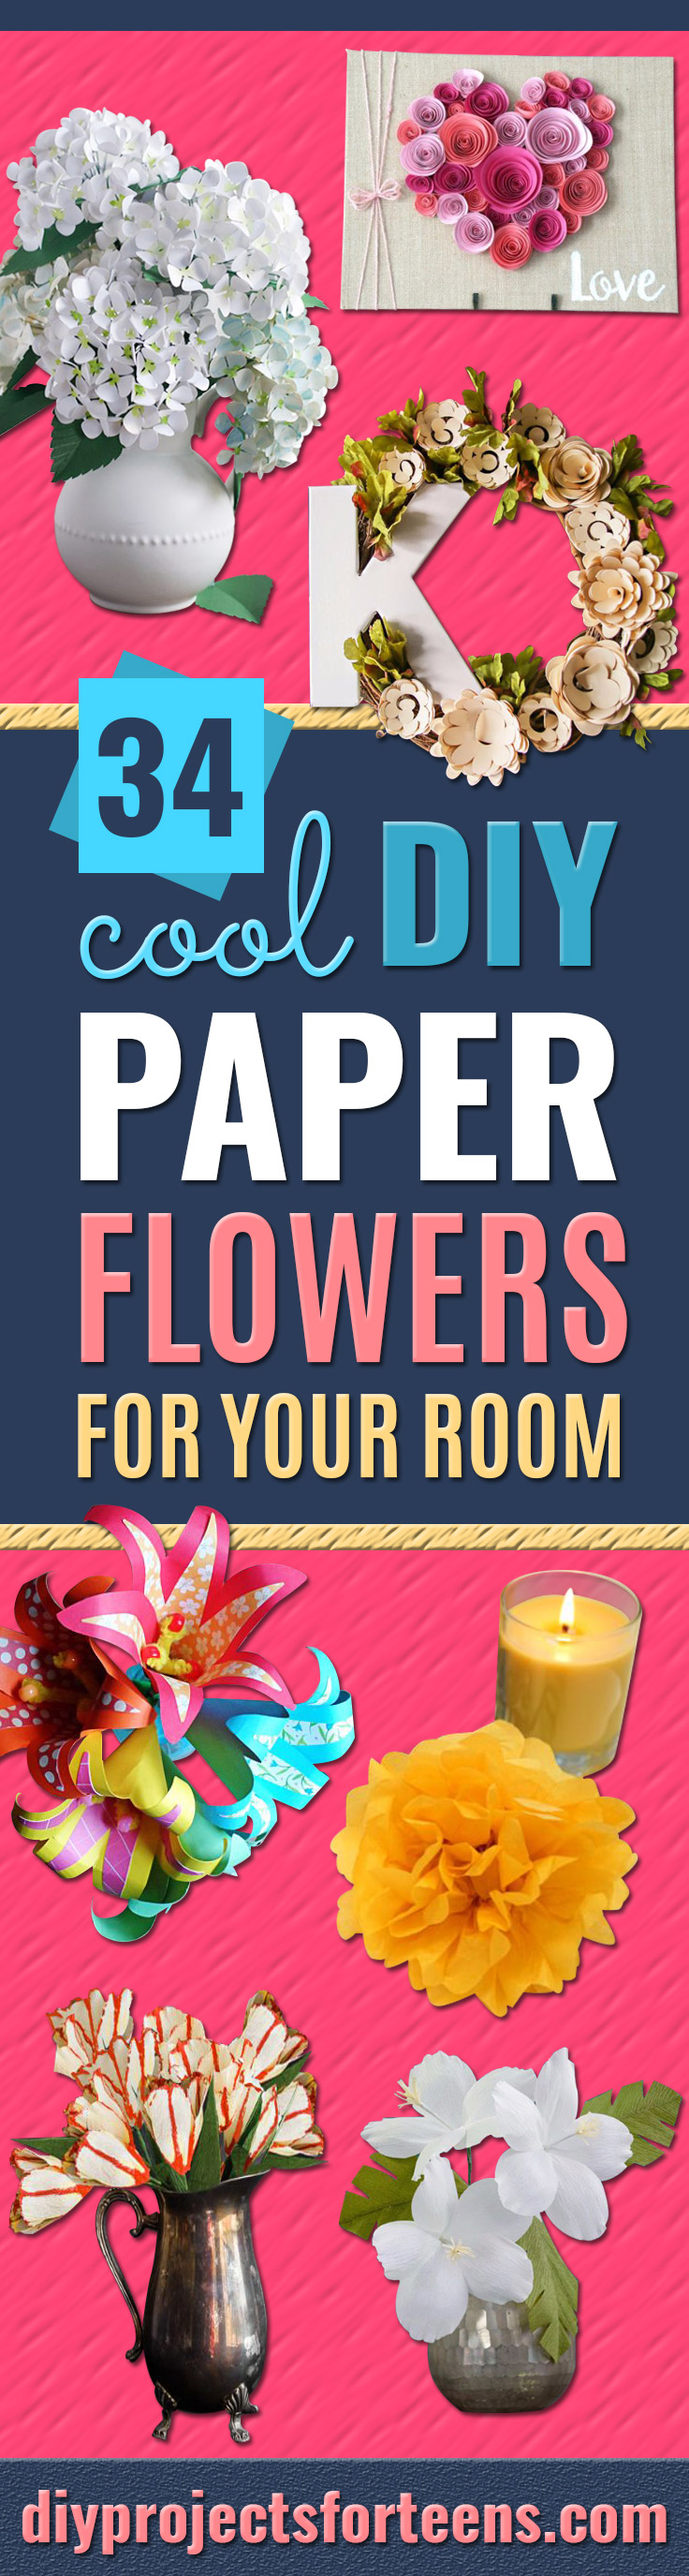 DIY Paper Flowers For Your Room - How To Make A Paper Flower - Large Wedding Backdrop for Wall Decor - Easy Tissue Paper Flower Tutorial for Kids - Giant Projects for Photo Backdrops - Daisy, Roses, Bouquets, Centerpieces - Cricut Template and Step by Step Tutorial http://diyjoy.com/diy-paper-flowers